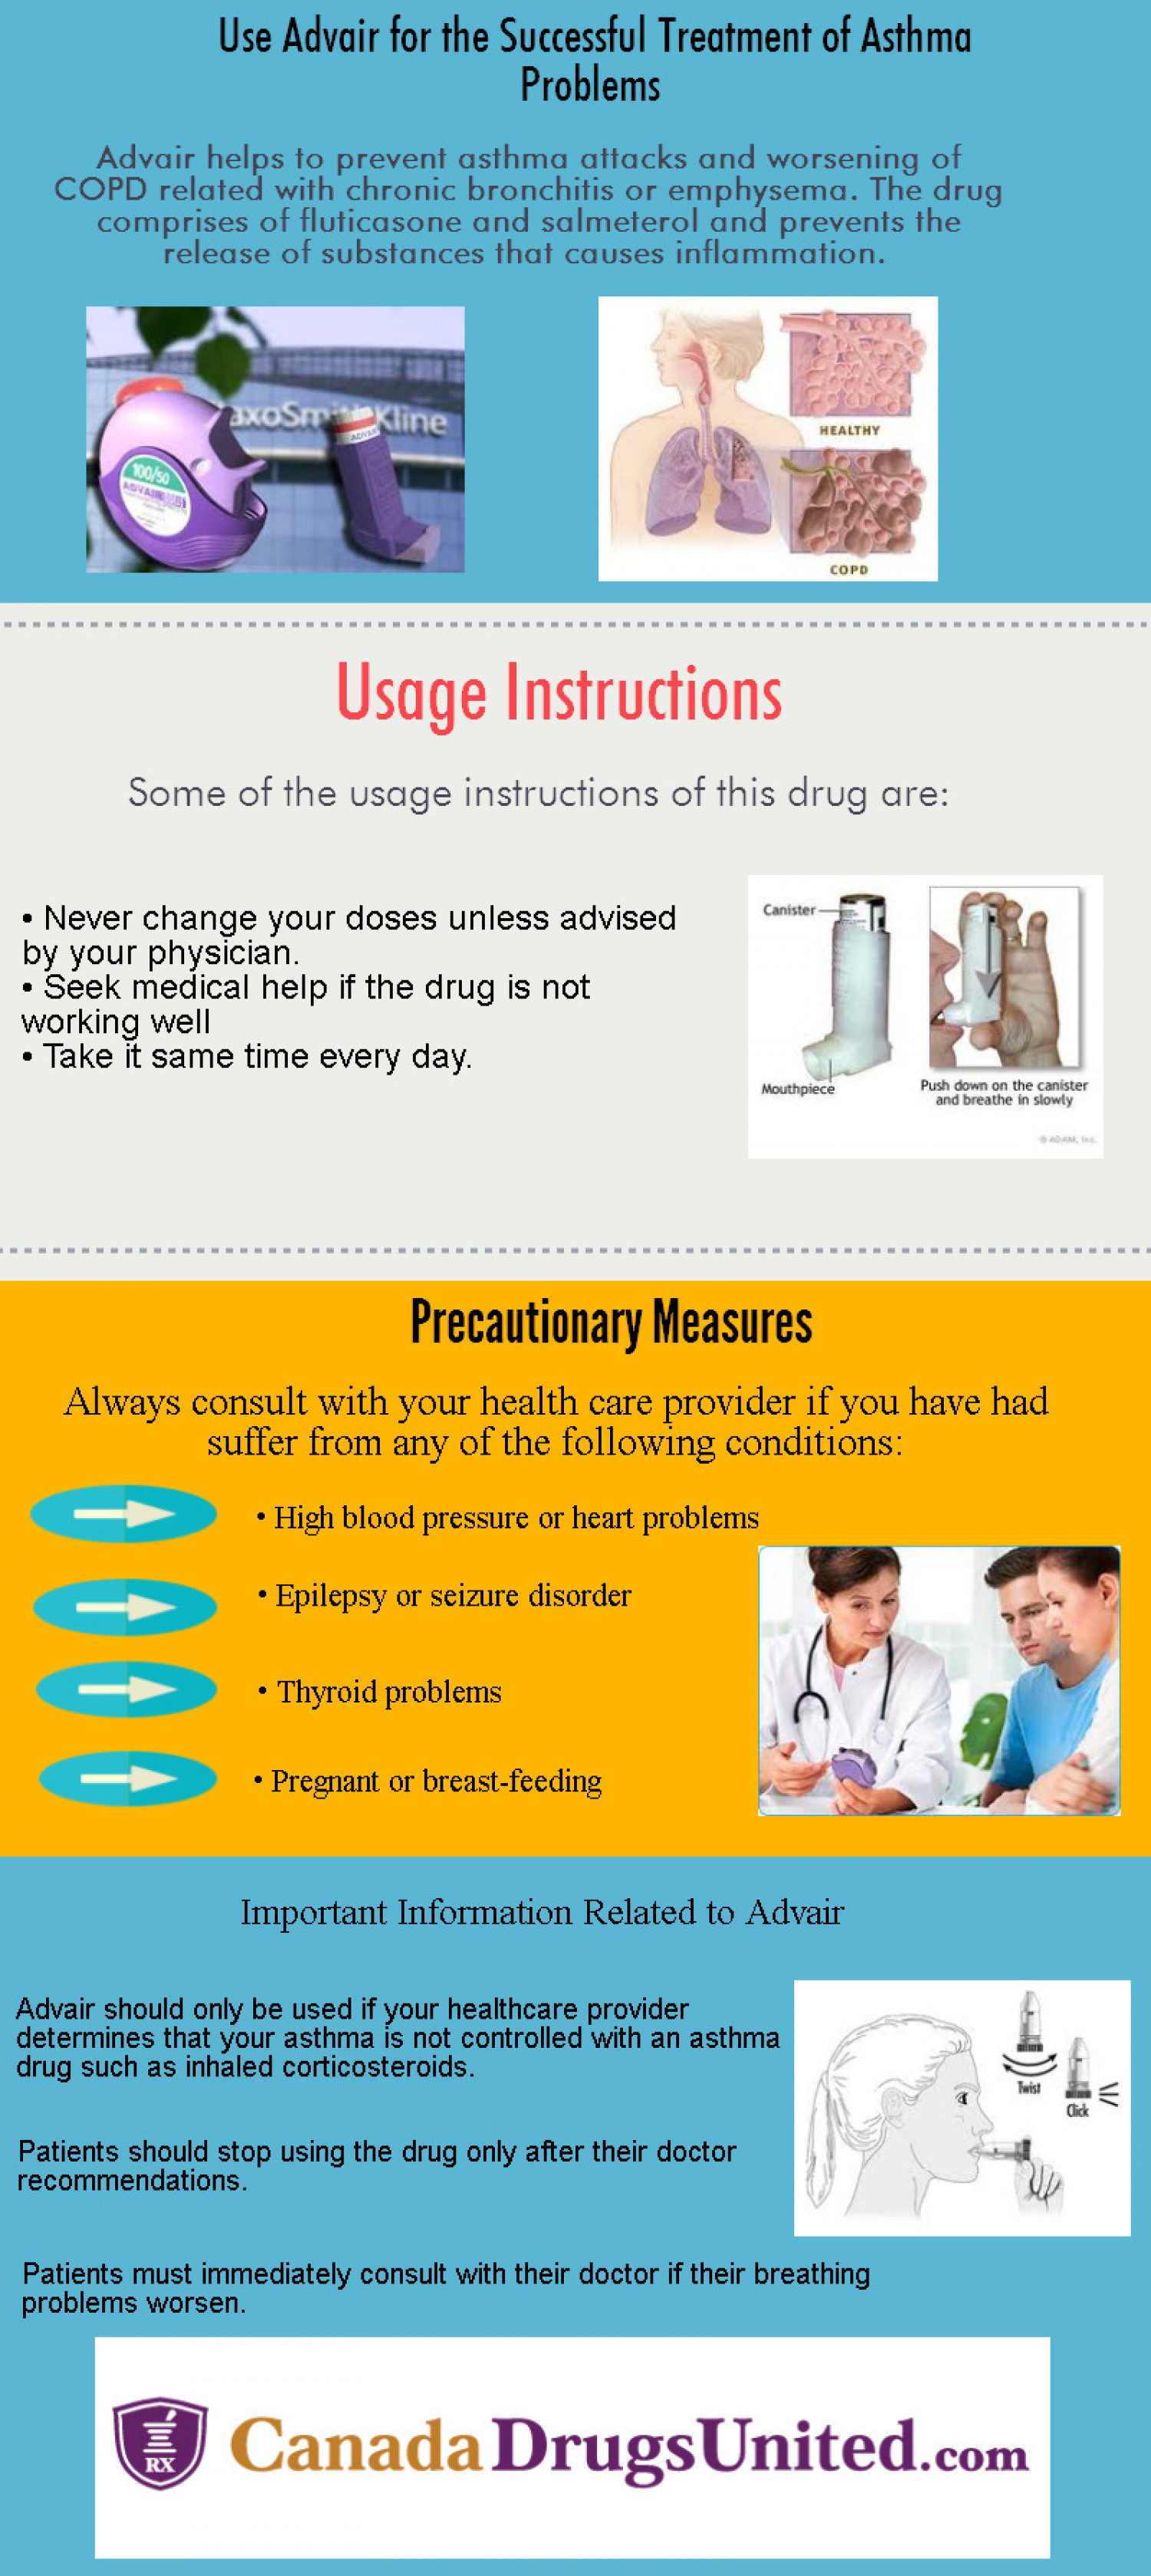 Use Advair for the Successful Treatment of Asthma Problems Infographic